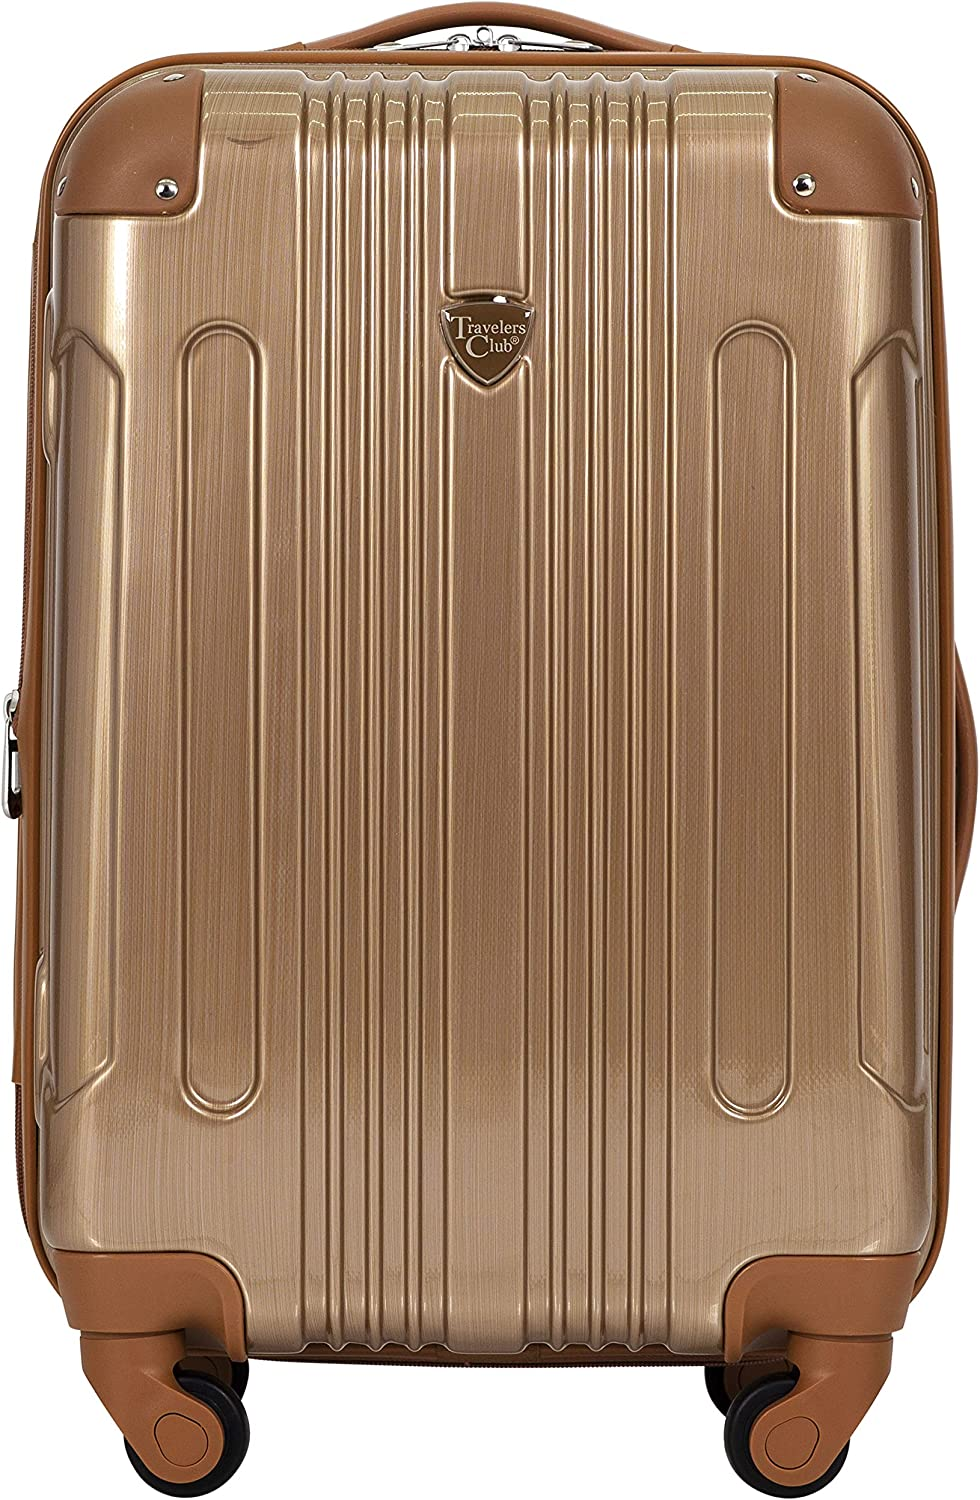 Travelers Club 20 or 3 Piece Polaris Metallic Accent Spinner Luggage